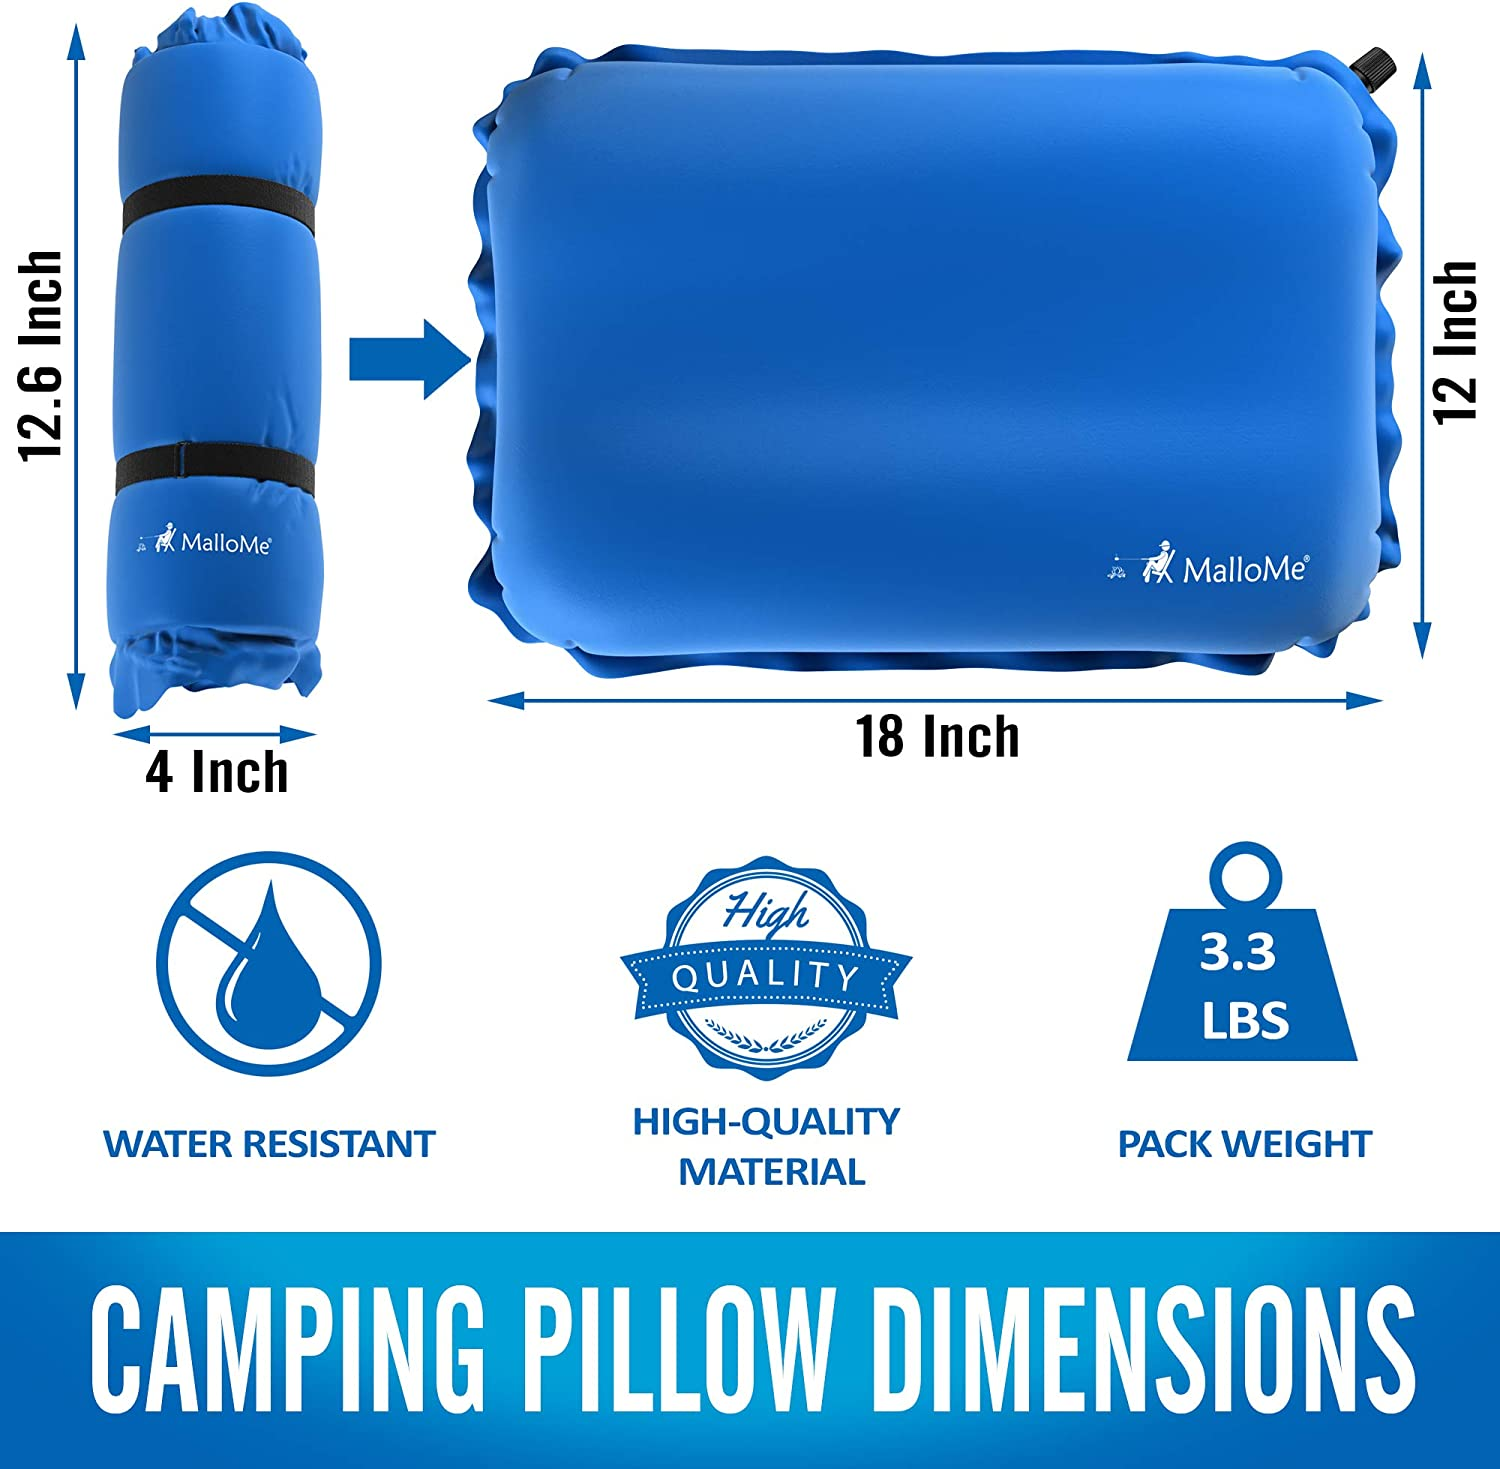 Small Mini Air Size Ultralight Inflating Compressible Compact Portable Gear Accessories Hiking Backpacking Camp Pillows for Sleeping Bag Pad MalloMe Inflatable Camping Travel Pillow